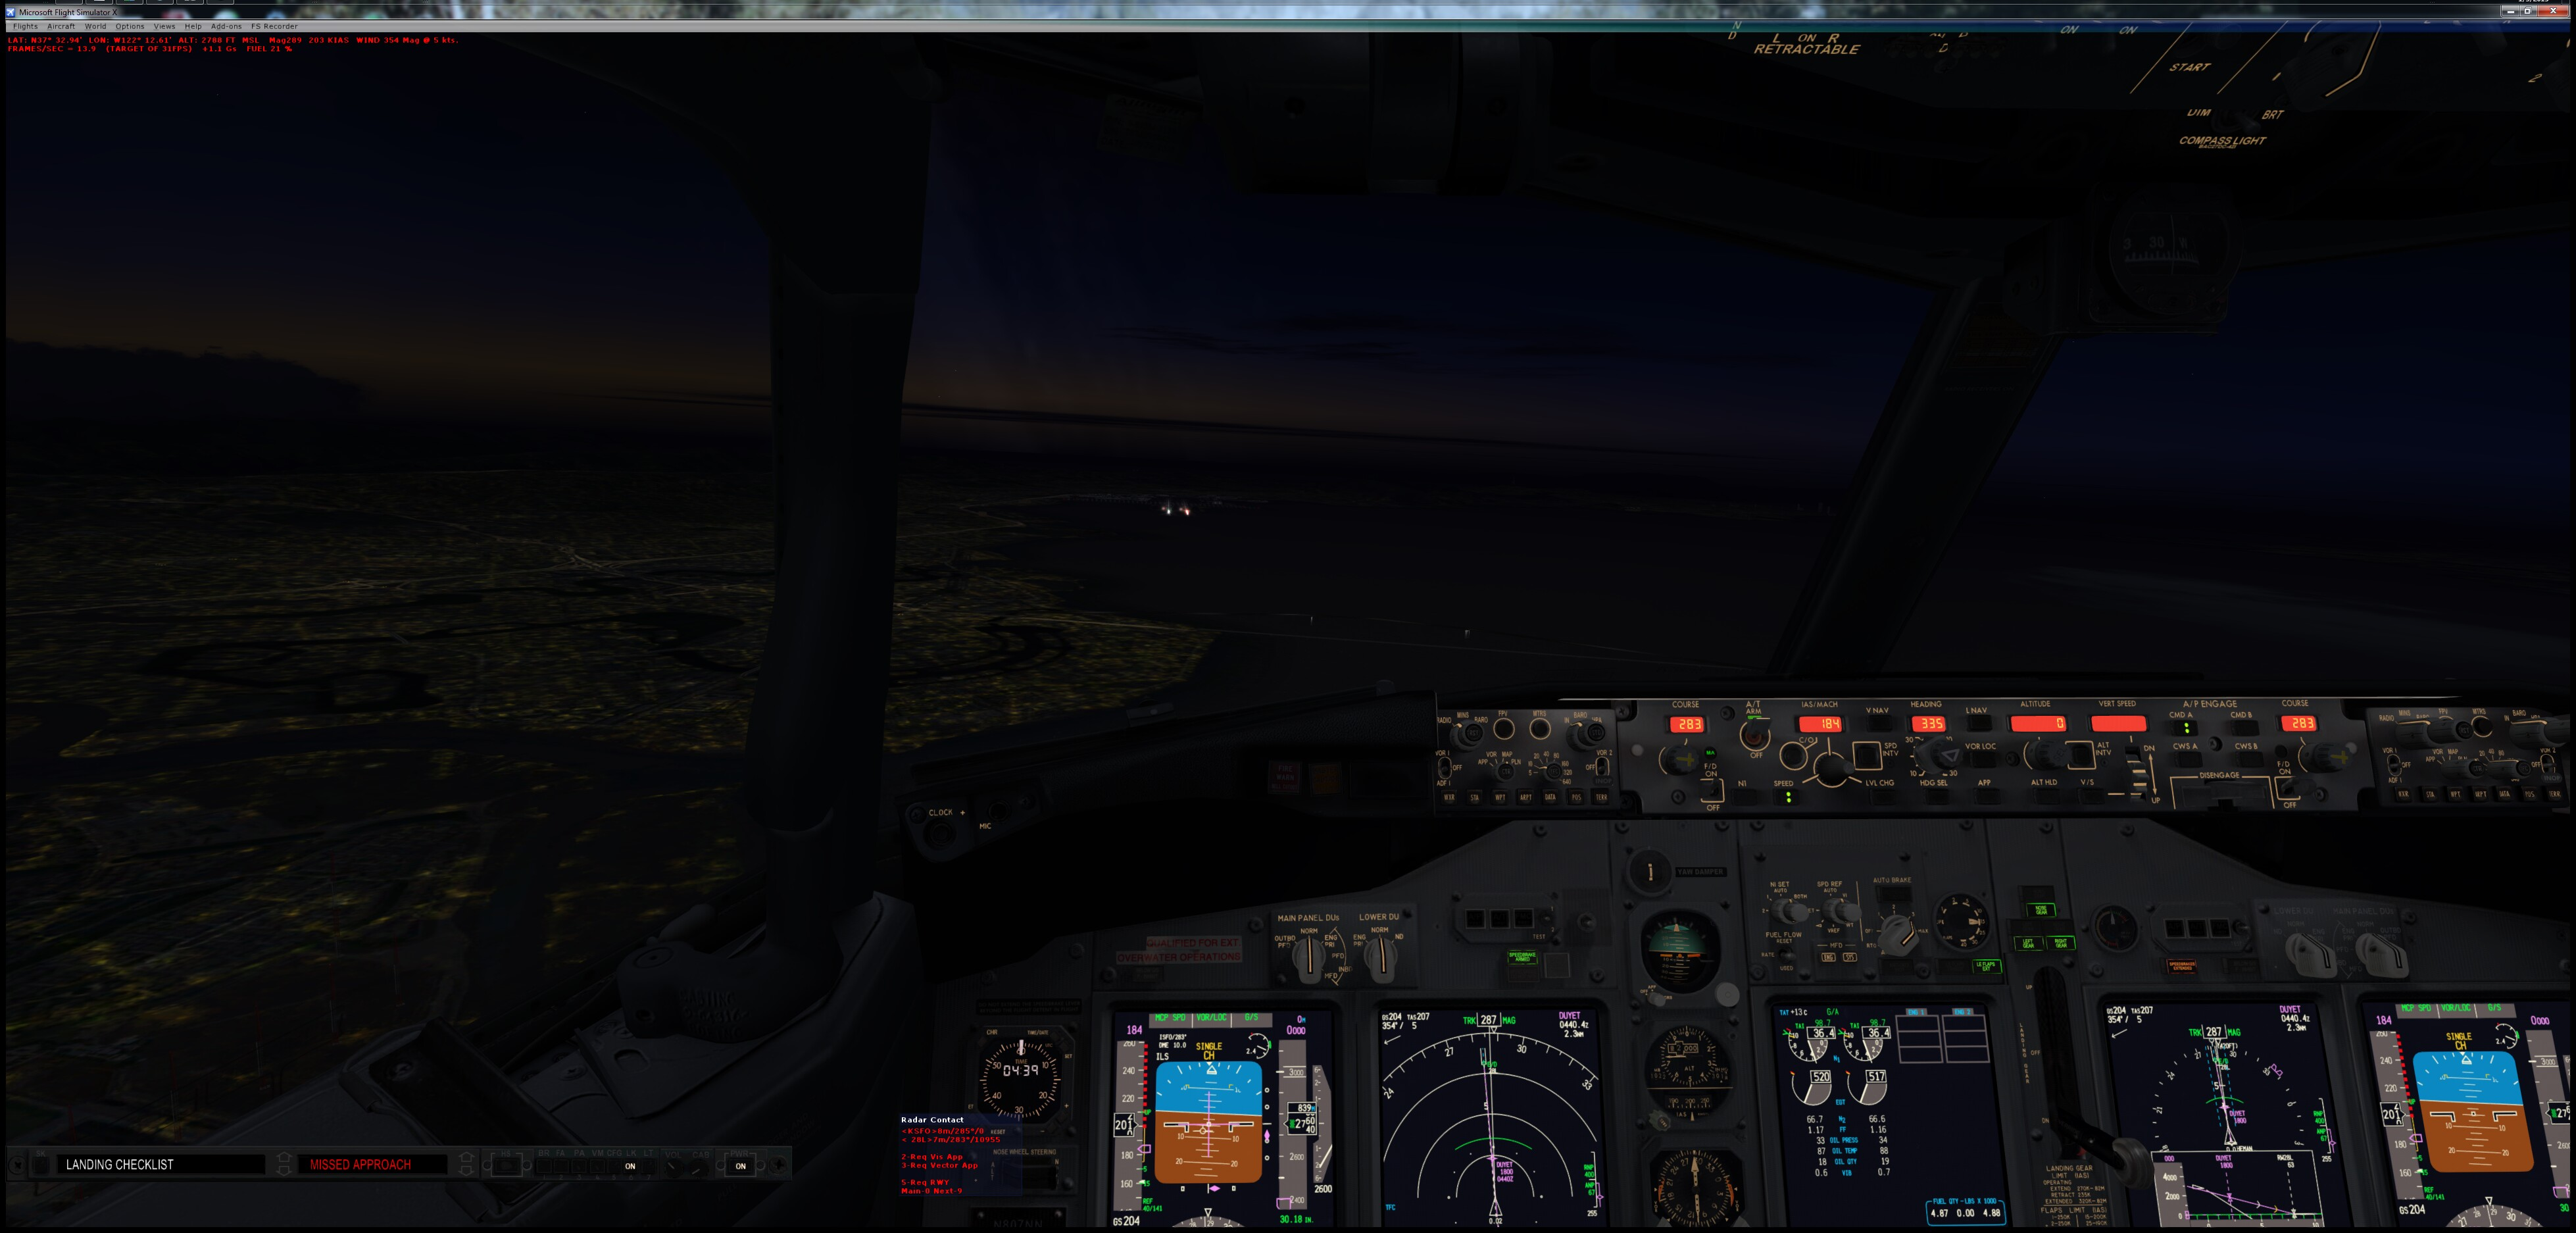 ScreenshotsKLAX-KSFO-17.jpg